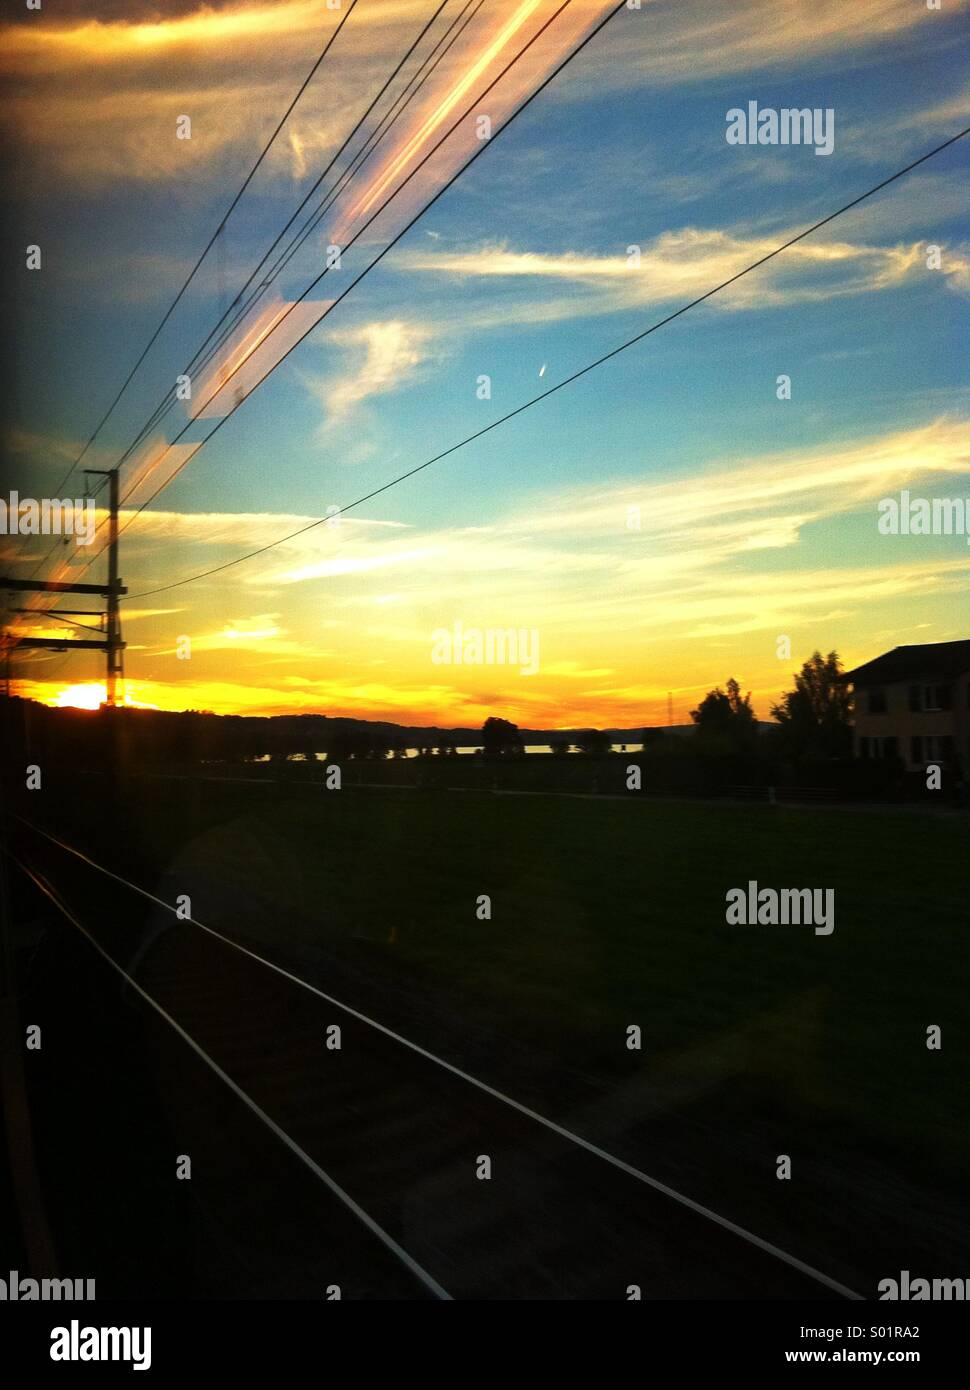 Train track power lines sunset - Stock Image